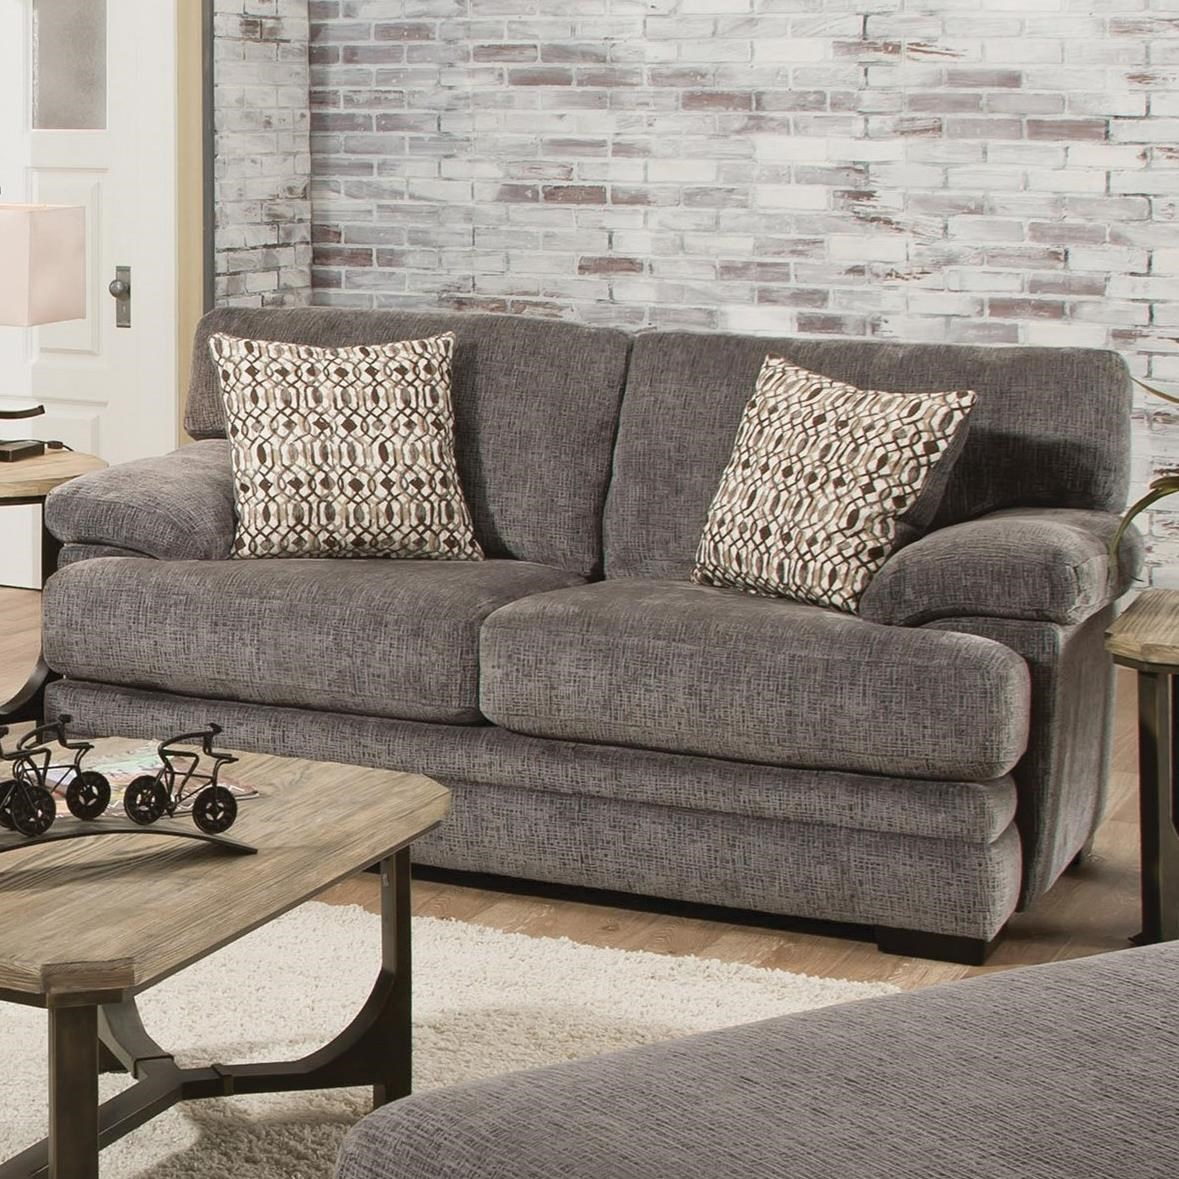 Albany 8662 Loveseat - Item Number: 8662-10-GENS-24794